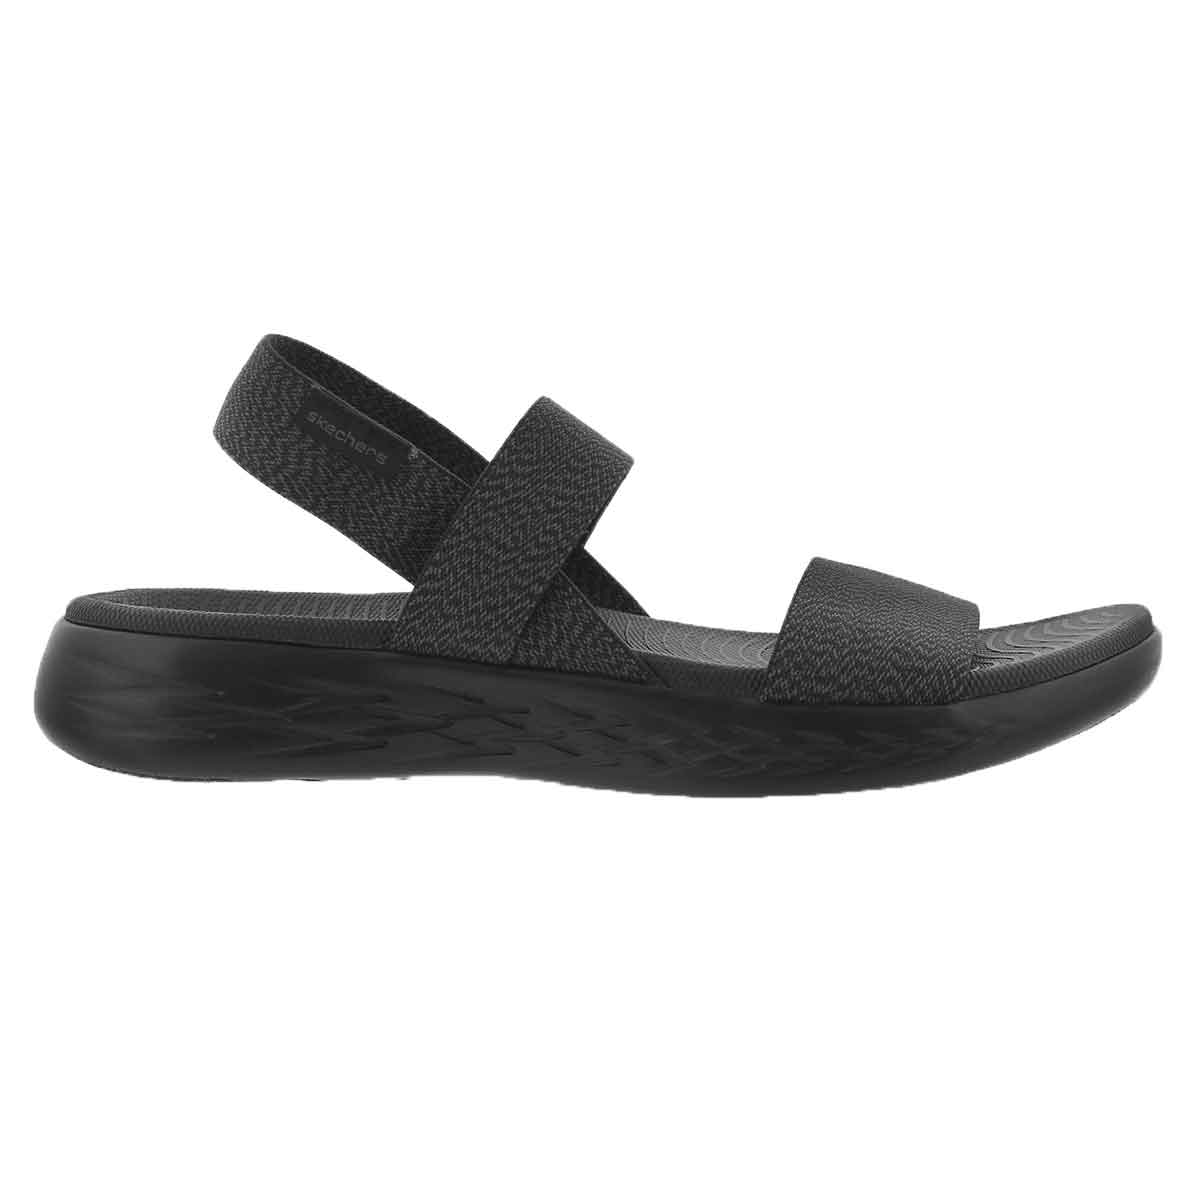 Lds On-The-Go 600 Ideal blk sport sandal